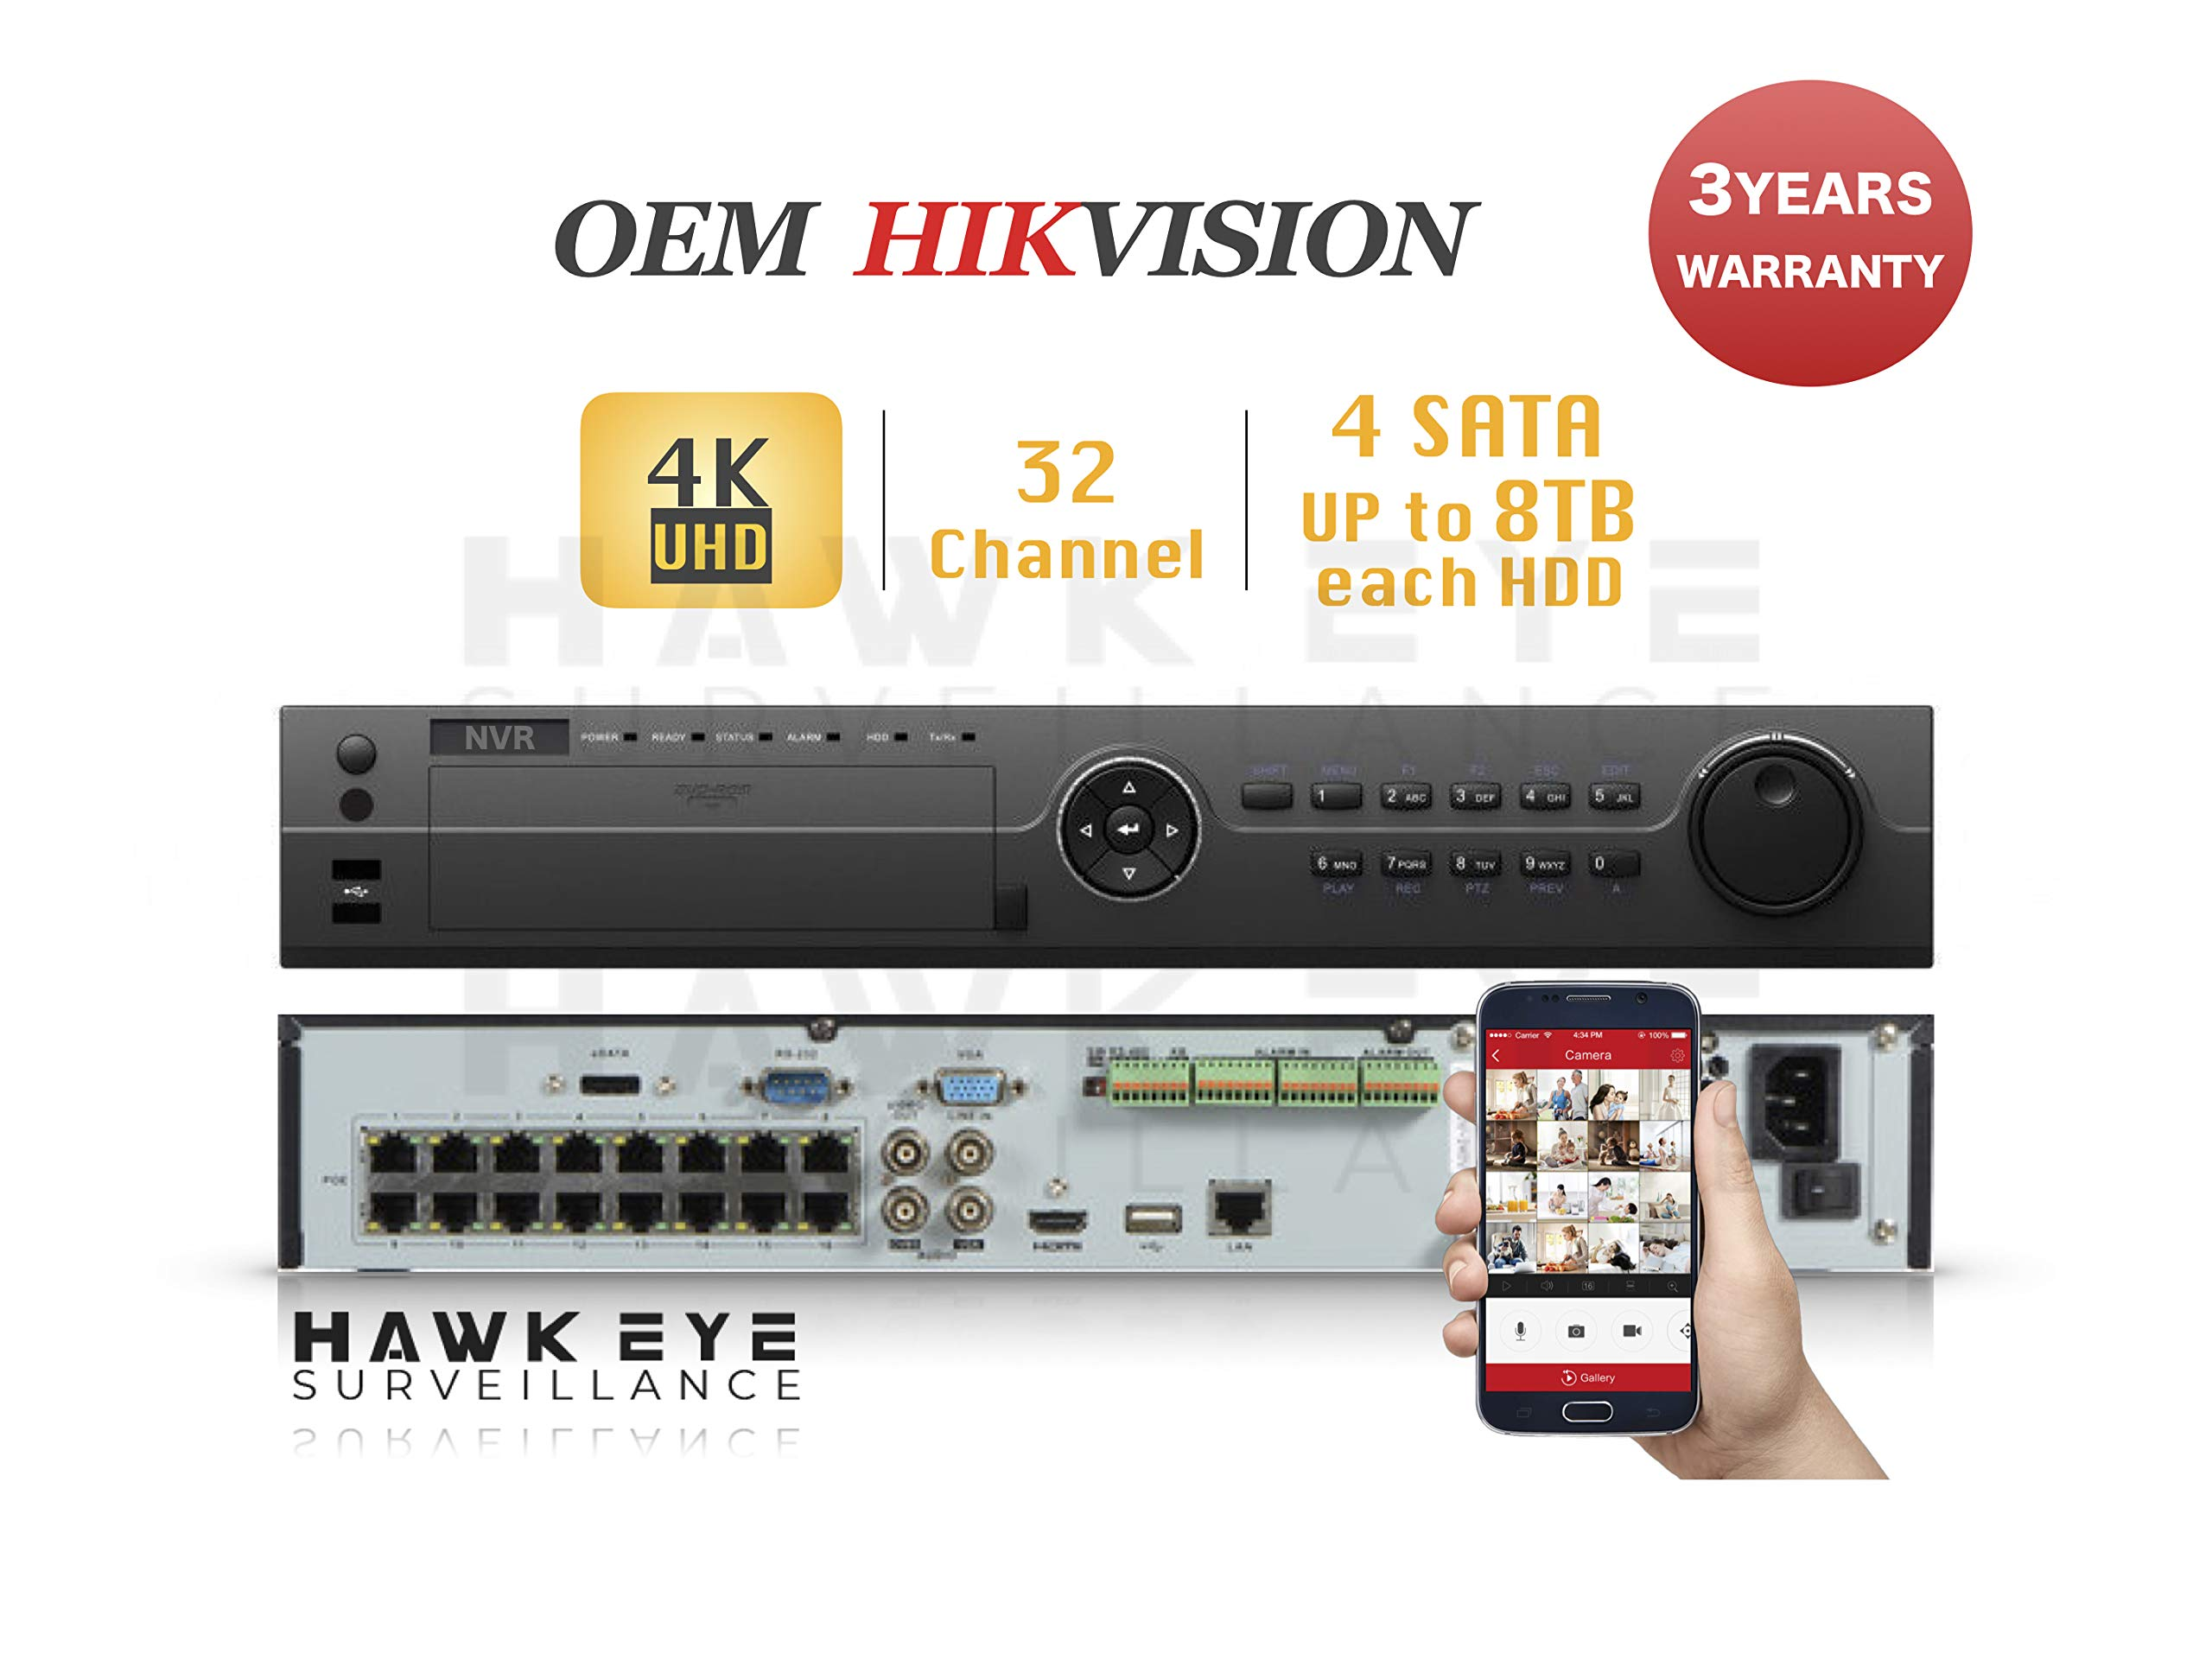 4K 32CH IP Network Video Recorder - 16 Built in PoE Port Up to 12MP Resolution Recording Compatible with DS-7732NI-I4/16P NVR 3 Year Warranty by HAWK EYE SURVEILLANCE